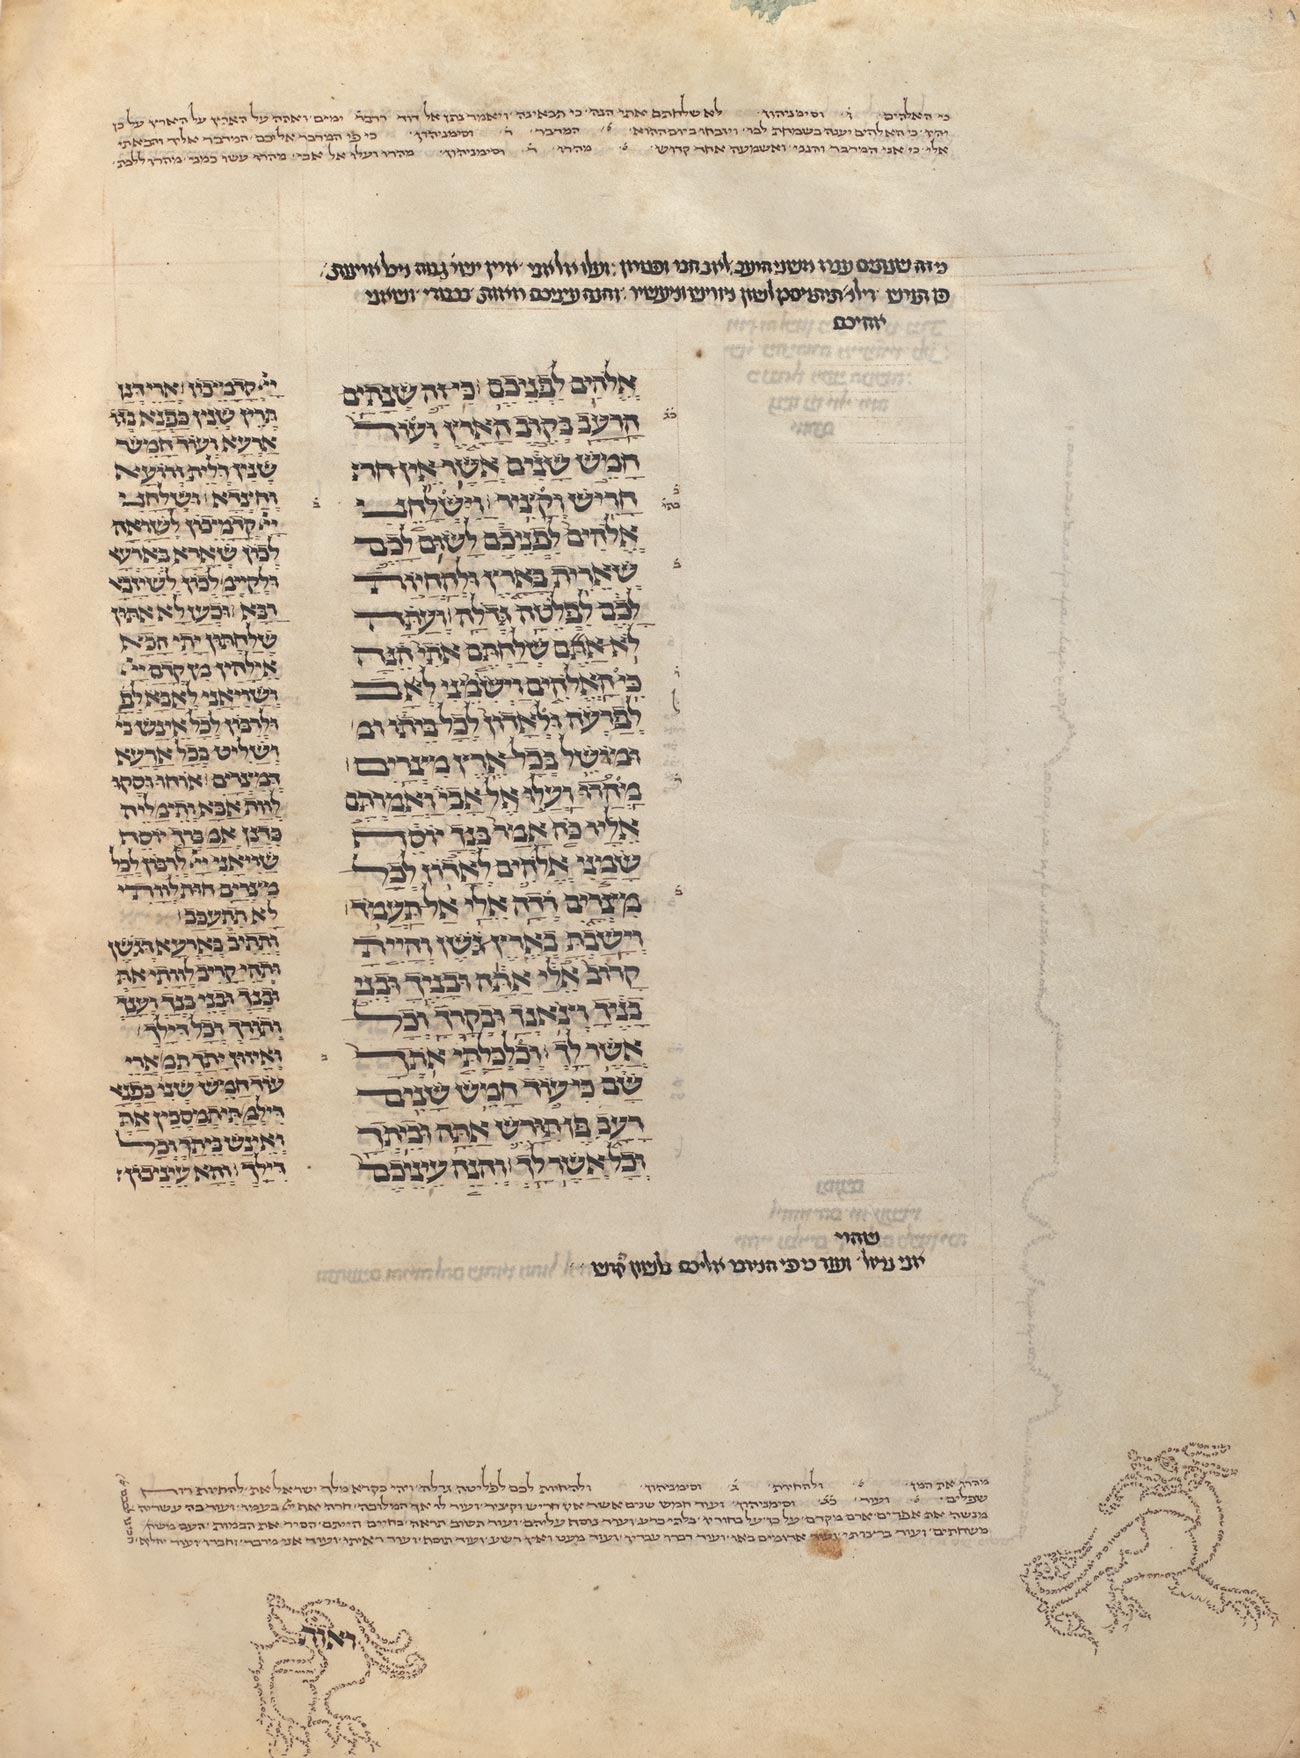 A page of relatively sparse Hebrew text includes two small creatures formed excluseively by lettering.